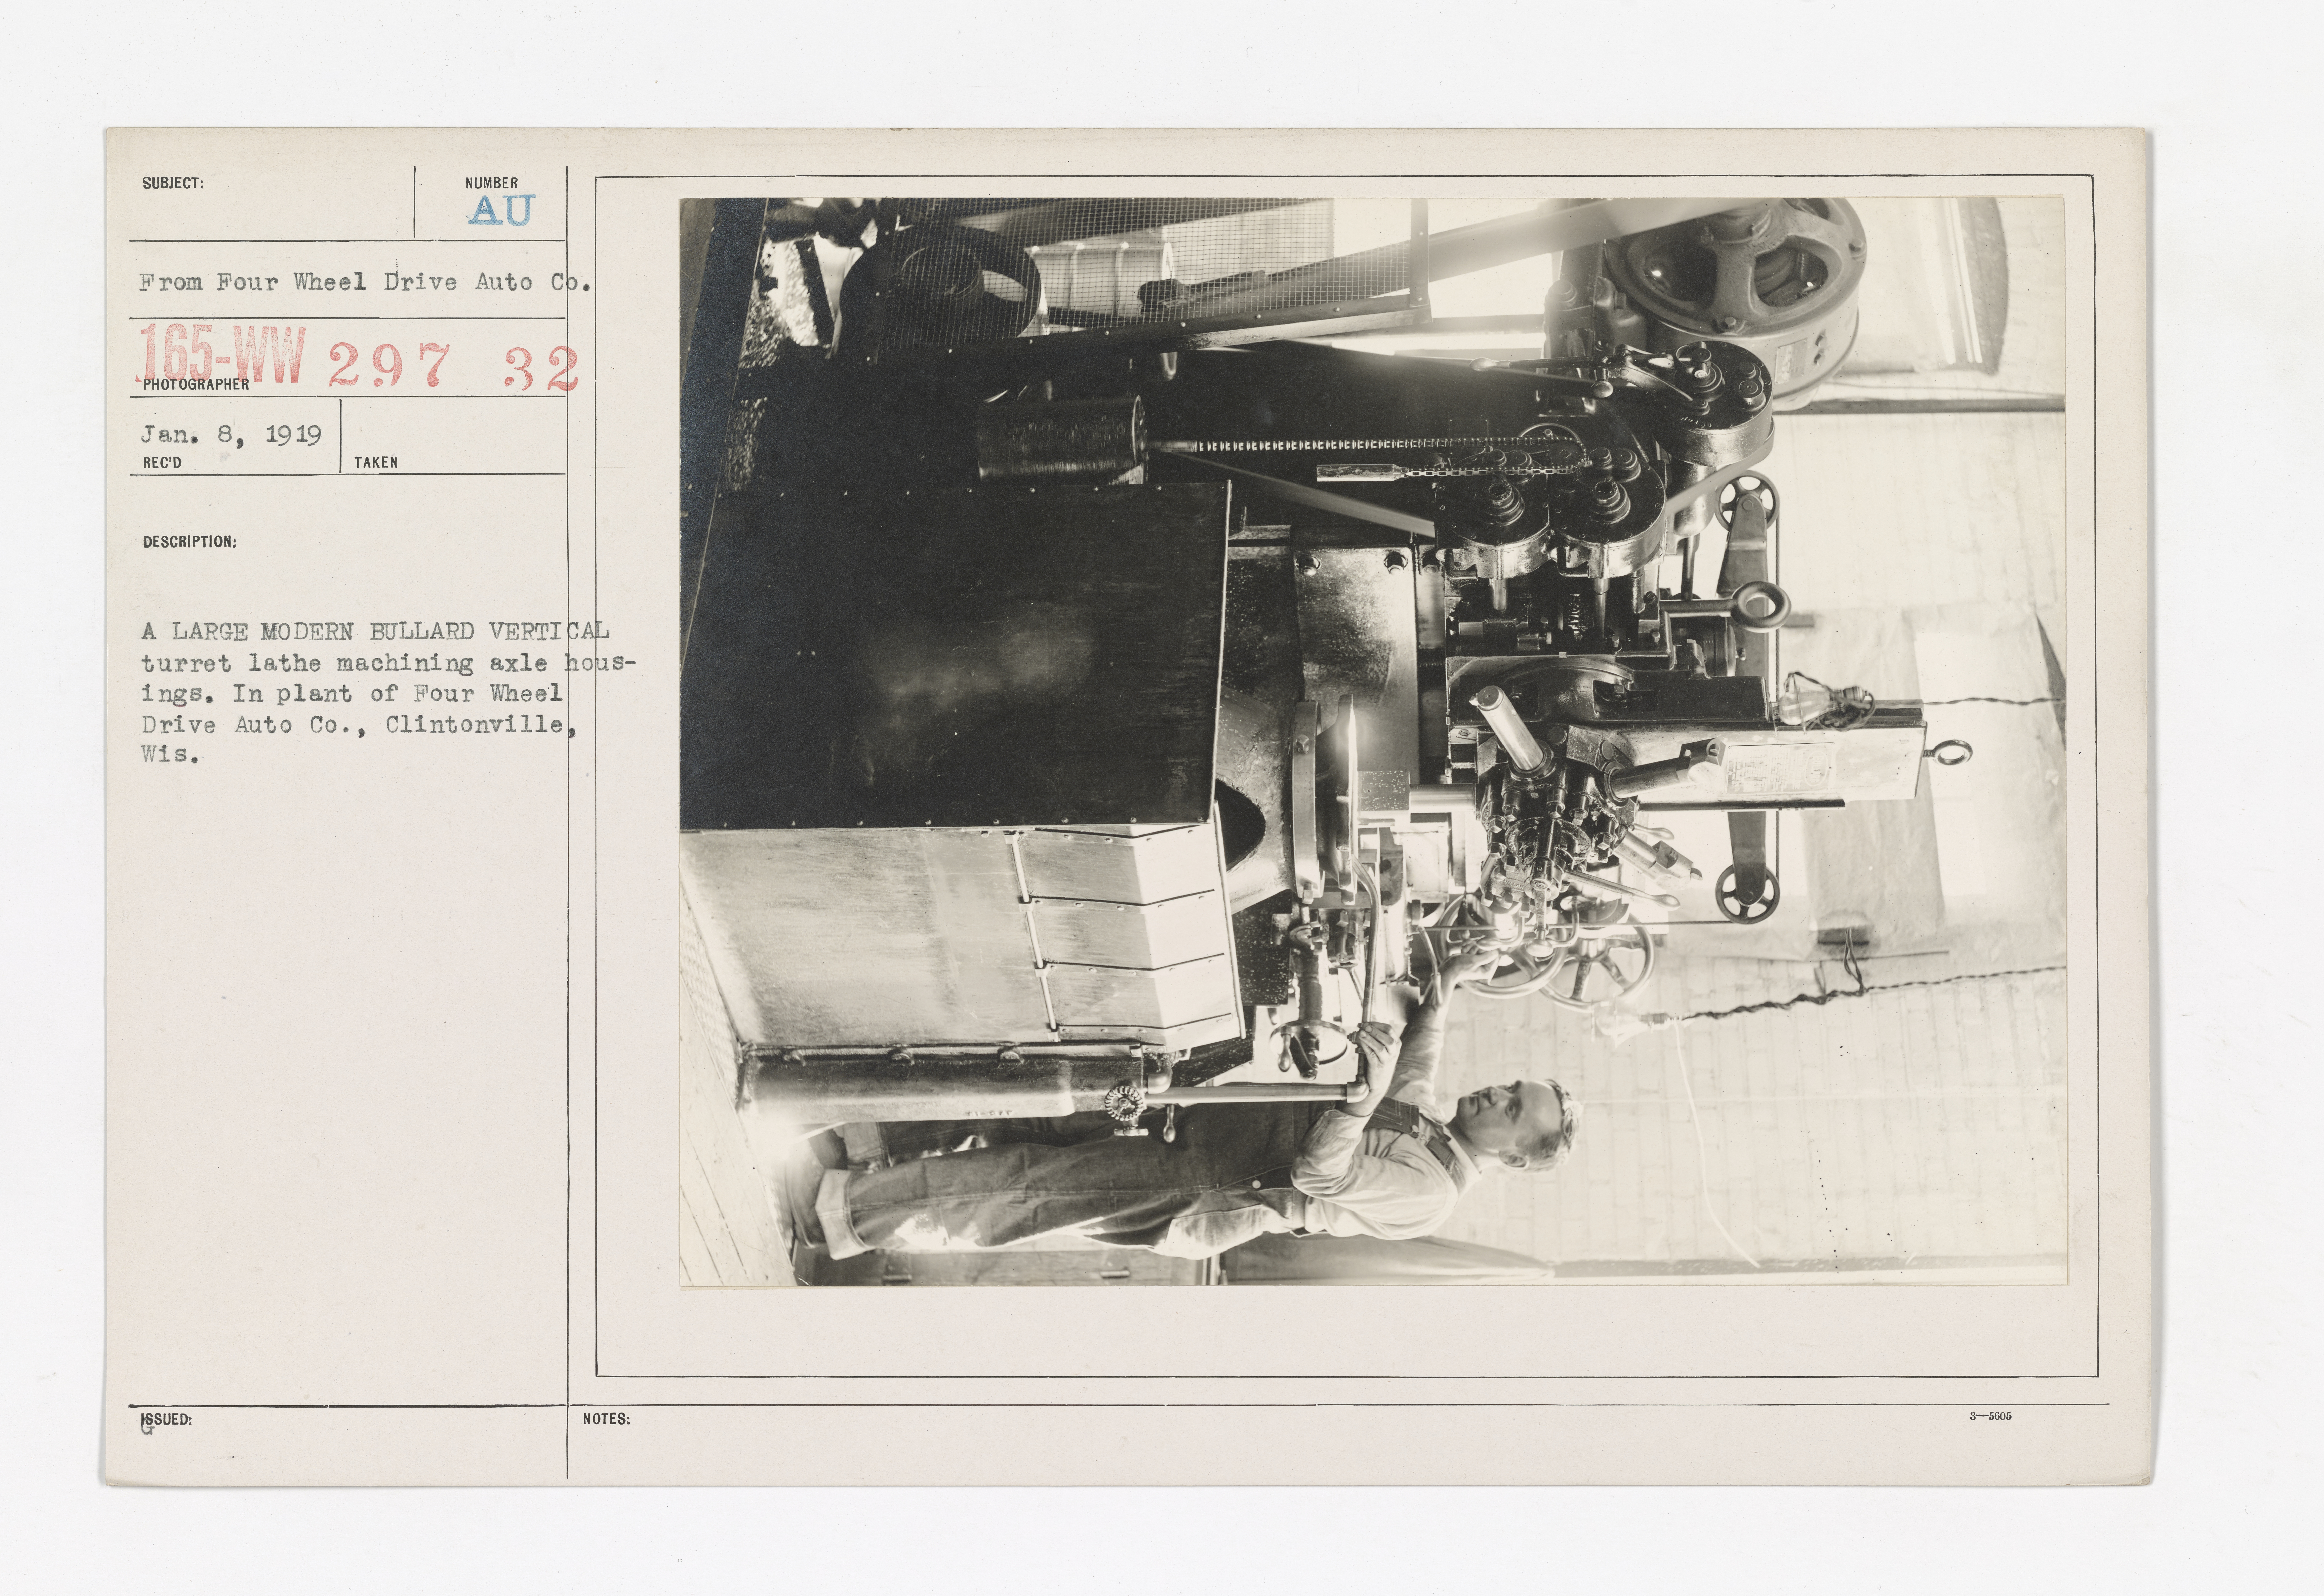 Motor Vehicles - Motor Trucks - Manufacturers - A large modern bullard vertical turret lathe machining axle housings. In plant of Four Wheel Drive Auto Co., Clintonville, Wis